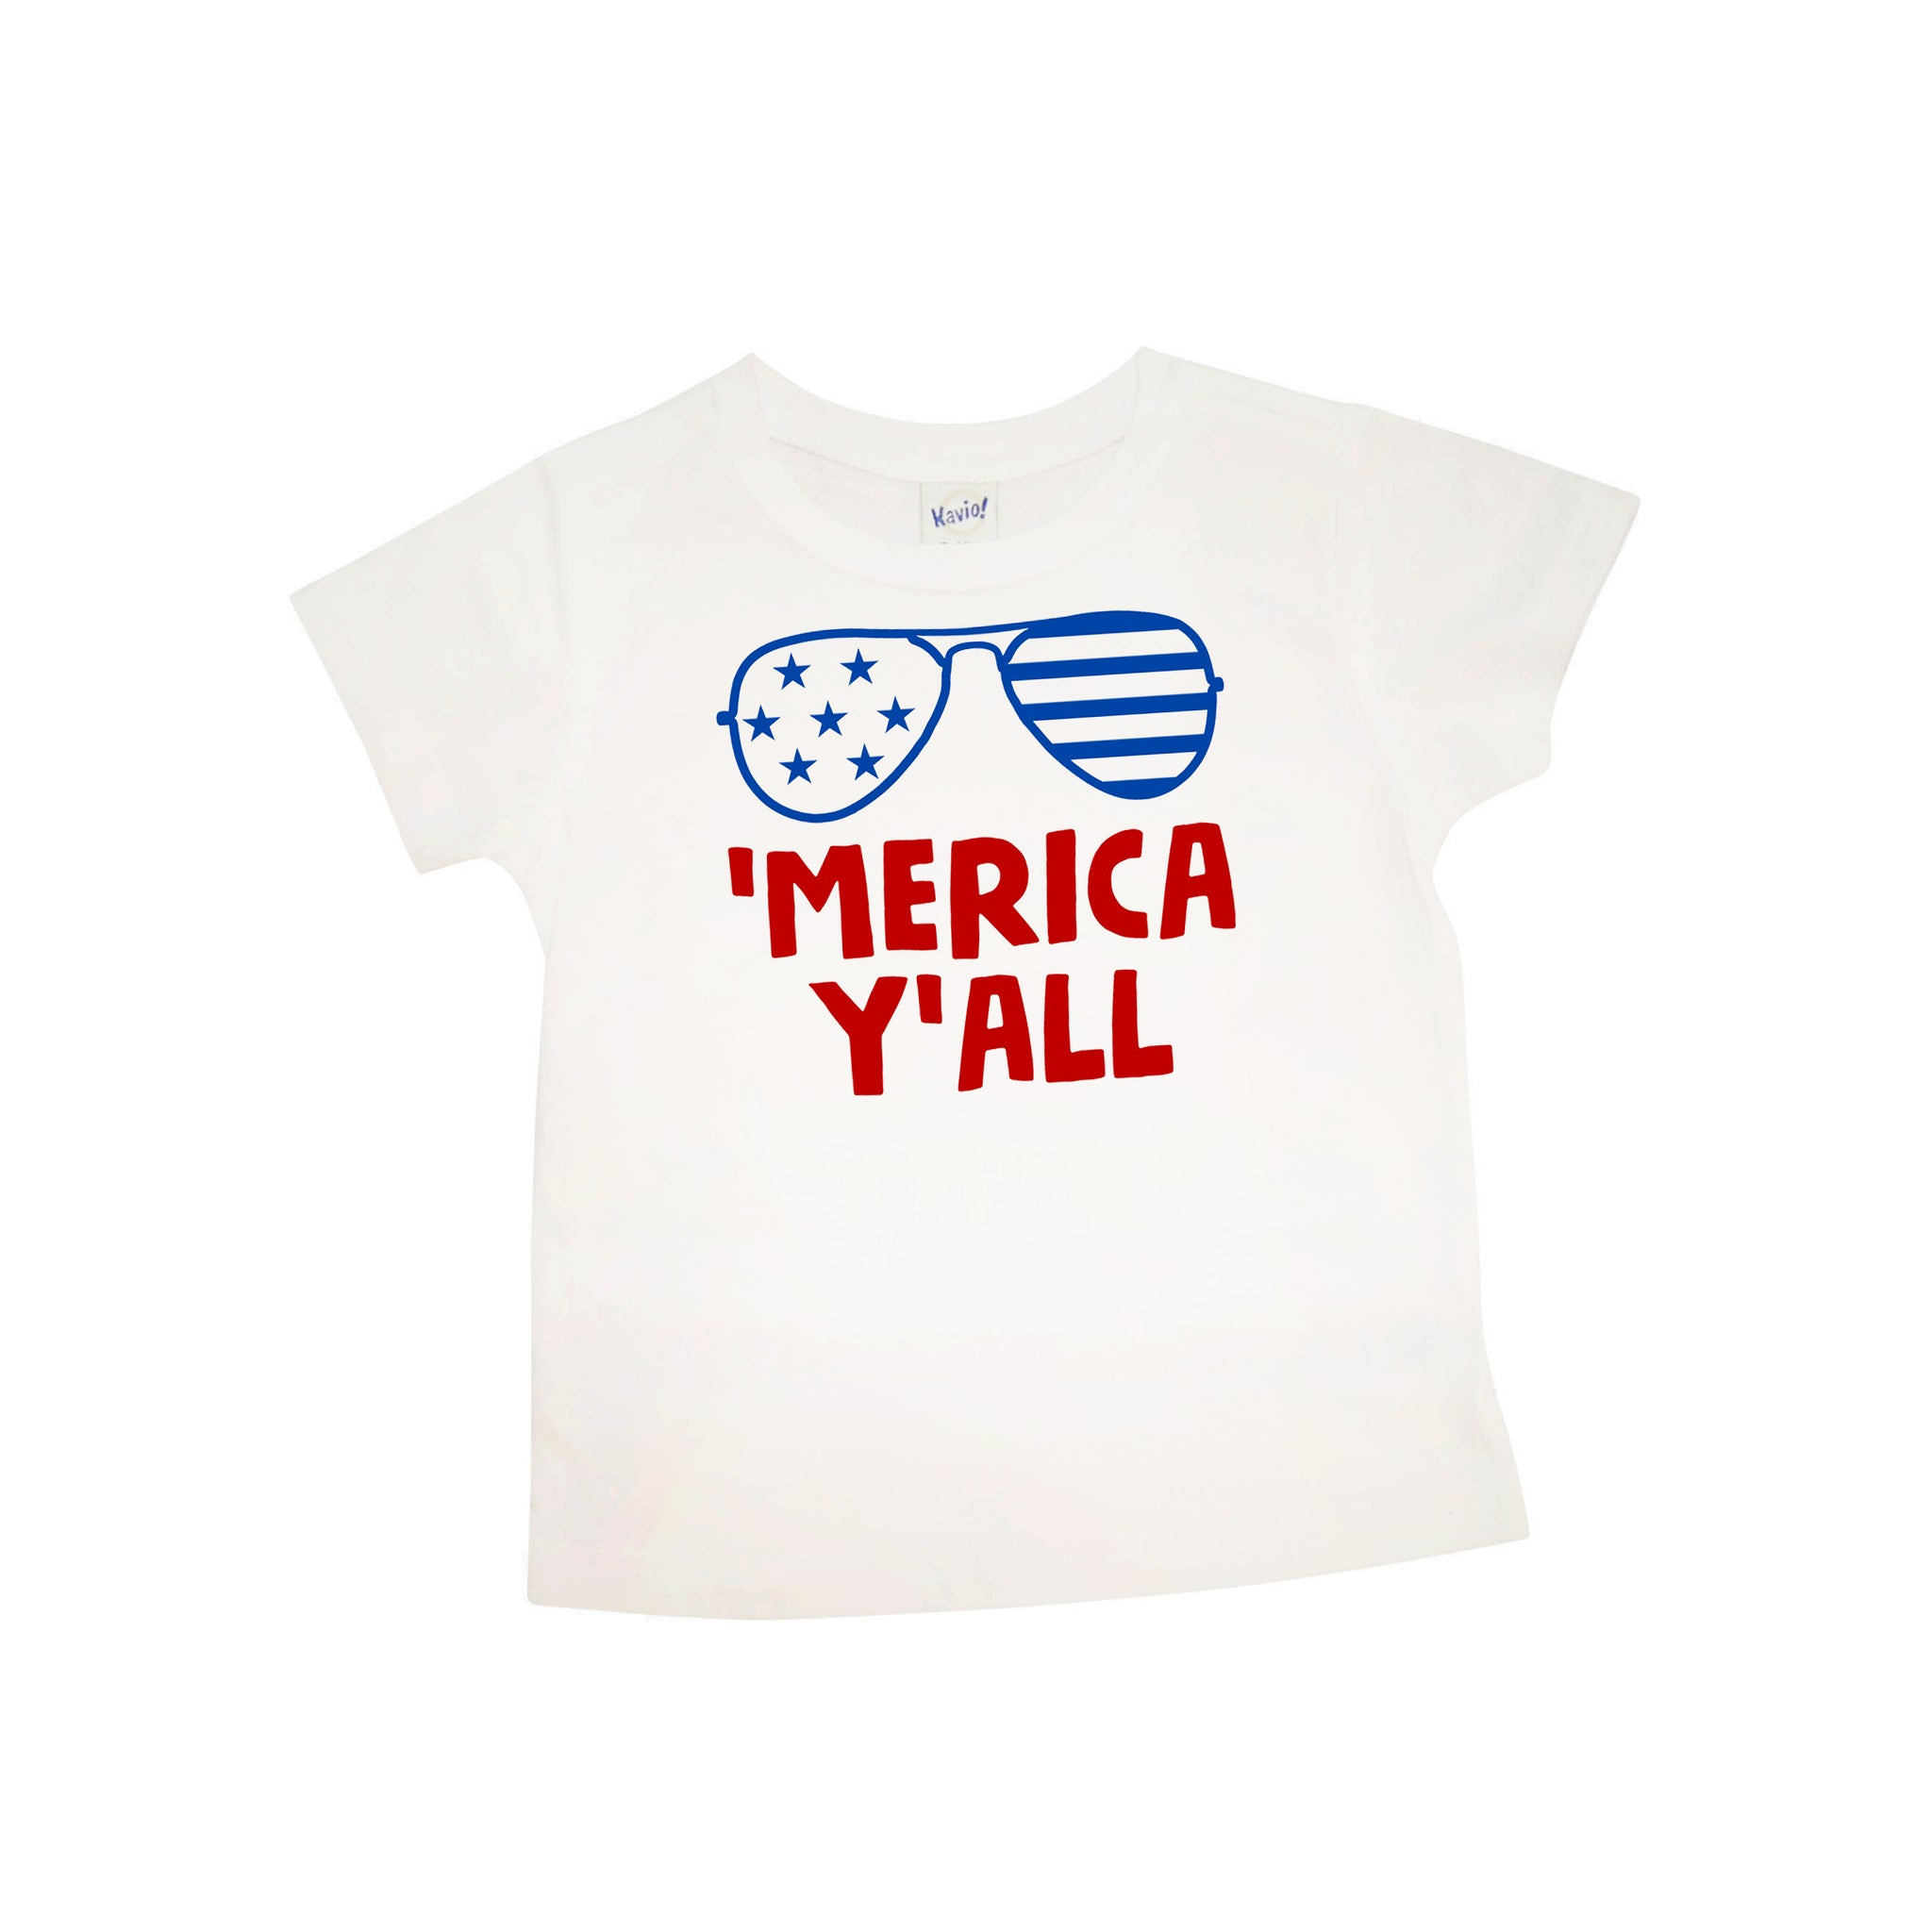 Merica Fourth of July Shirt, Merica Shirt for Toddler, Fun Fourth of July Shirts, Girl's or Boy's 'Merica Y'all 420